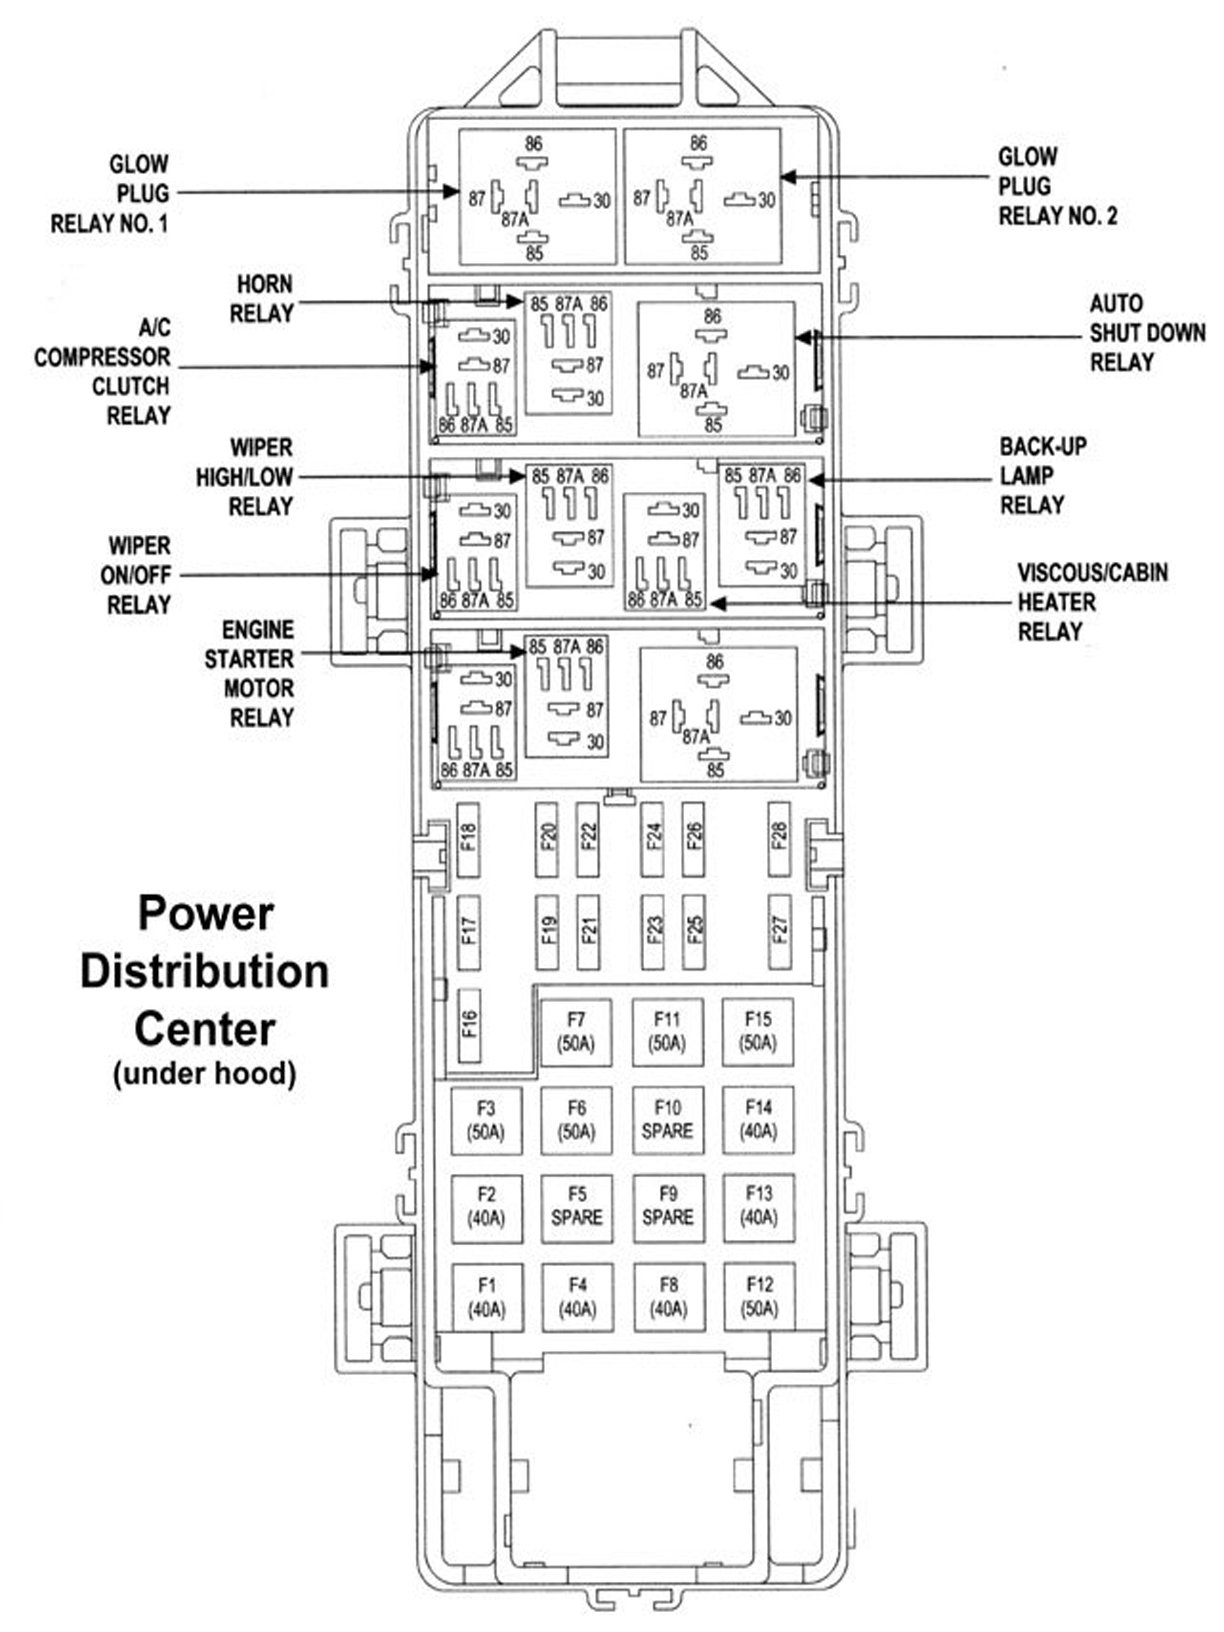 cherokee fog lamp relay wiring diagram